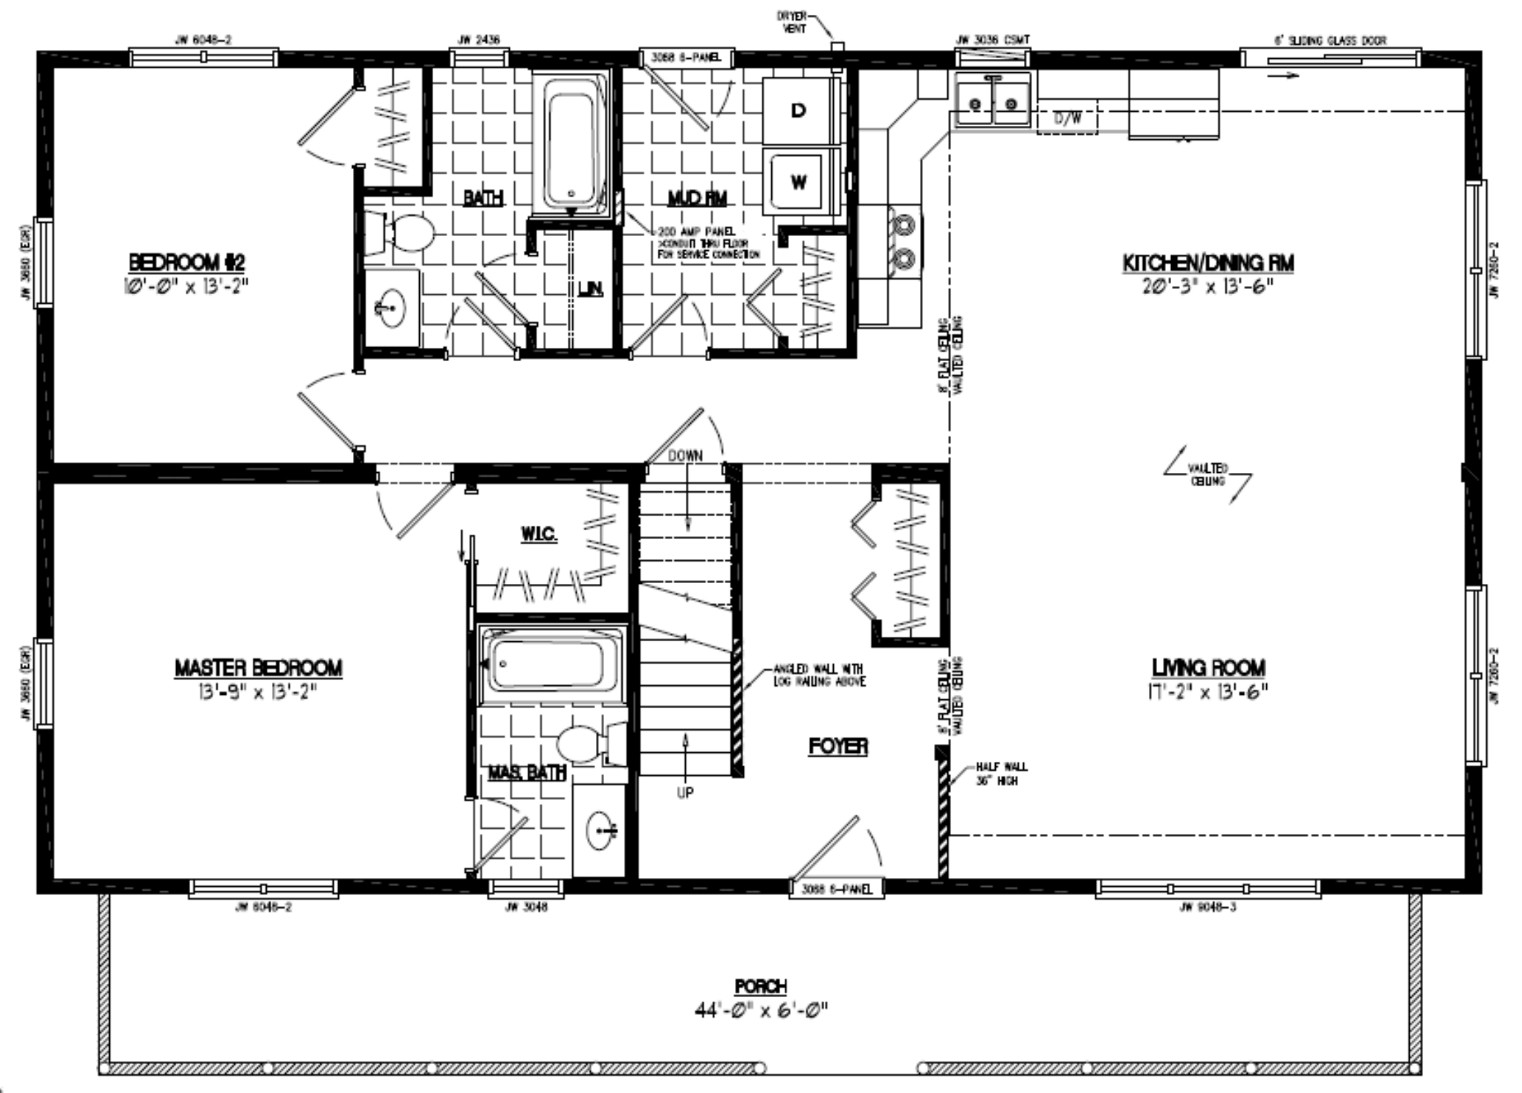 28 X 60 Floor Plans | Wiring Diagram Database